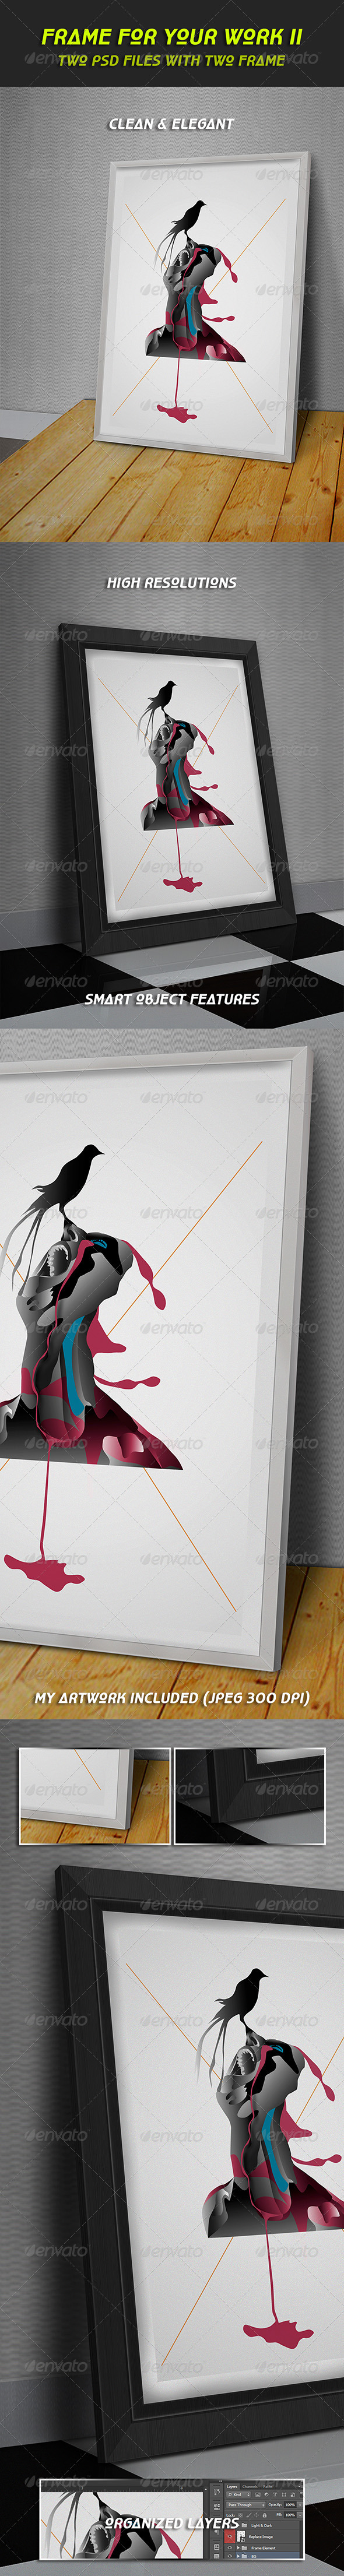 GraphicRiver Frame for Your Work II 3475169